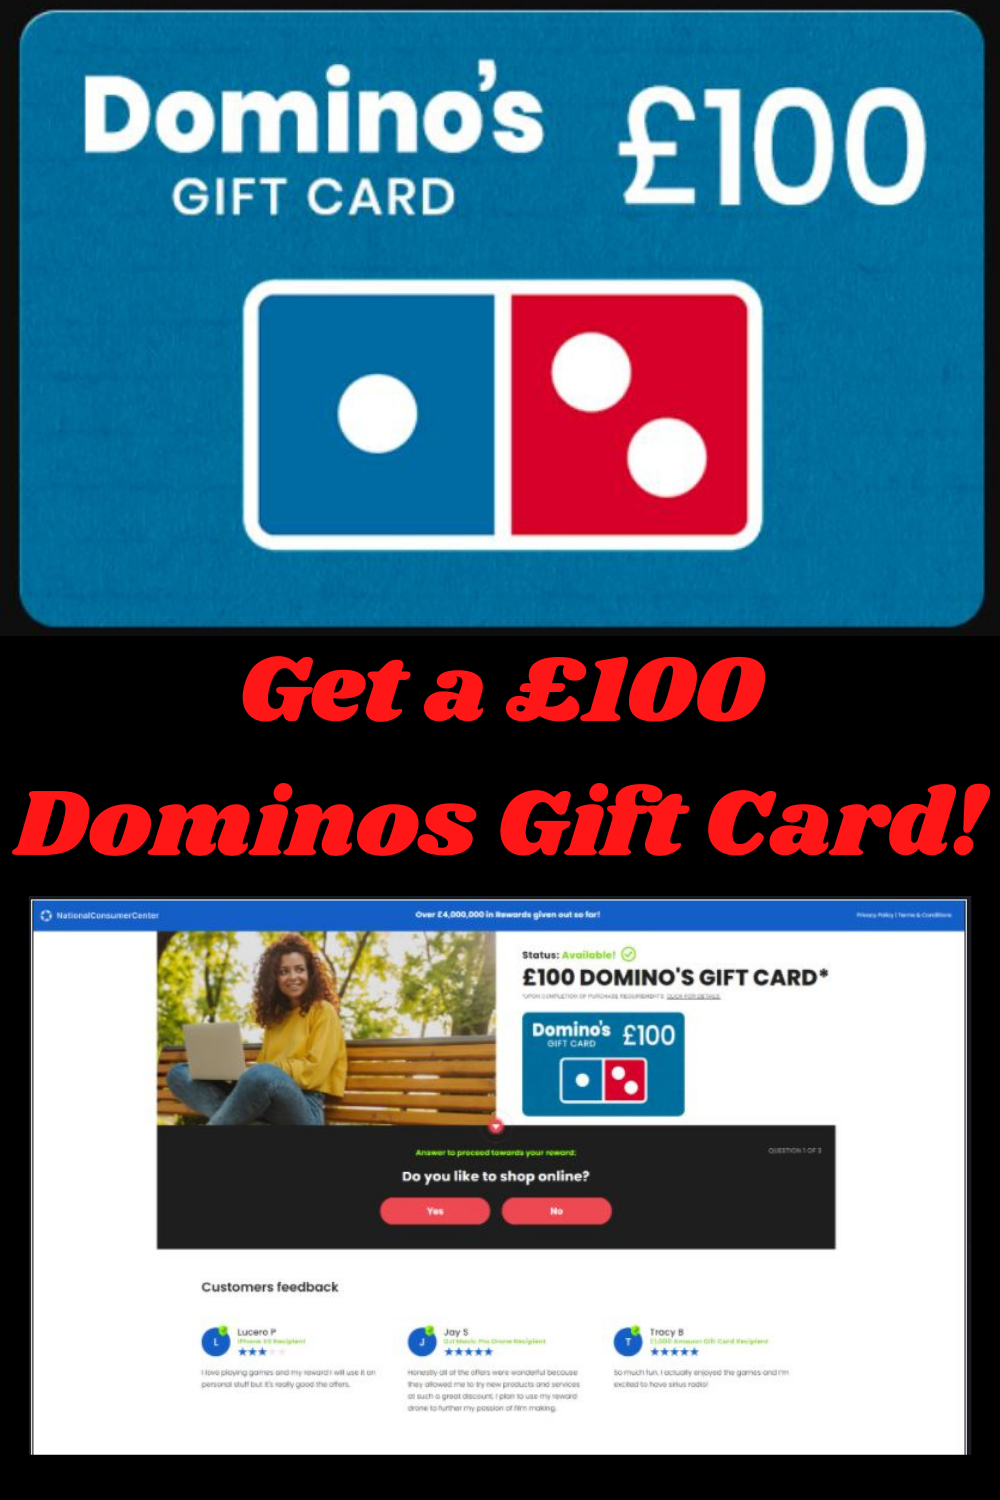 Dominos 100 Get A 100 Dominos Gift Card For Uk Gift Card Generator Amazon Gift Card Free Itunes Gift Cards